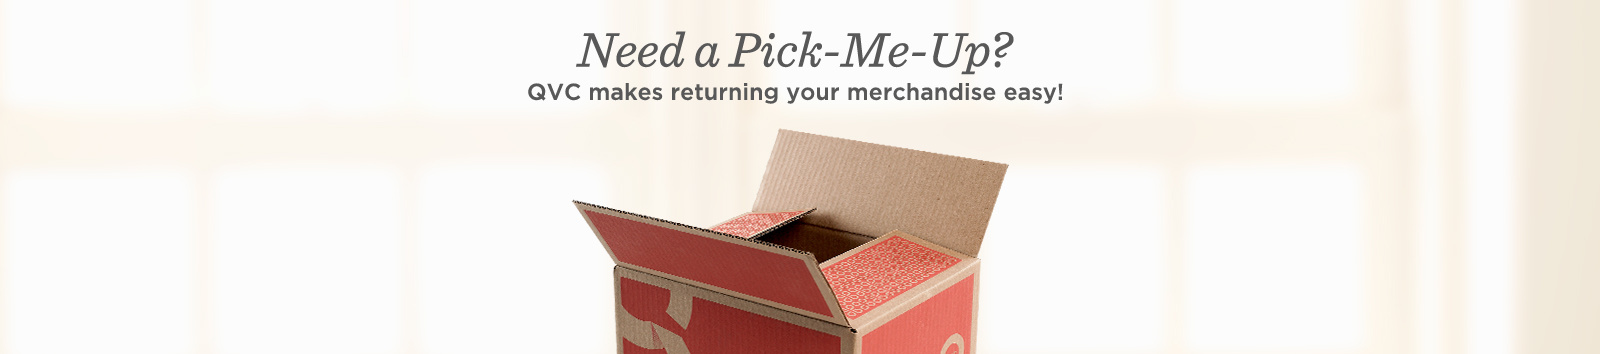 Need a Pick-Me-Up?  QVC makes returning your merchandise easy!